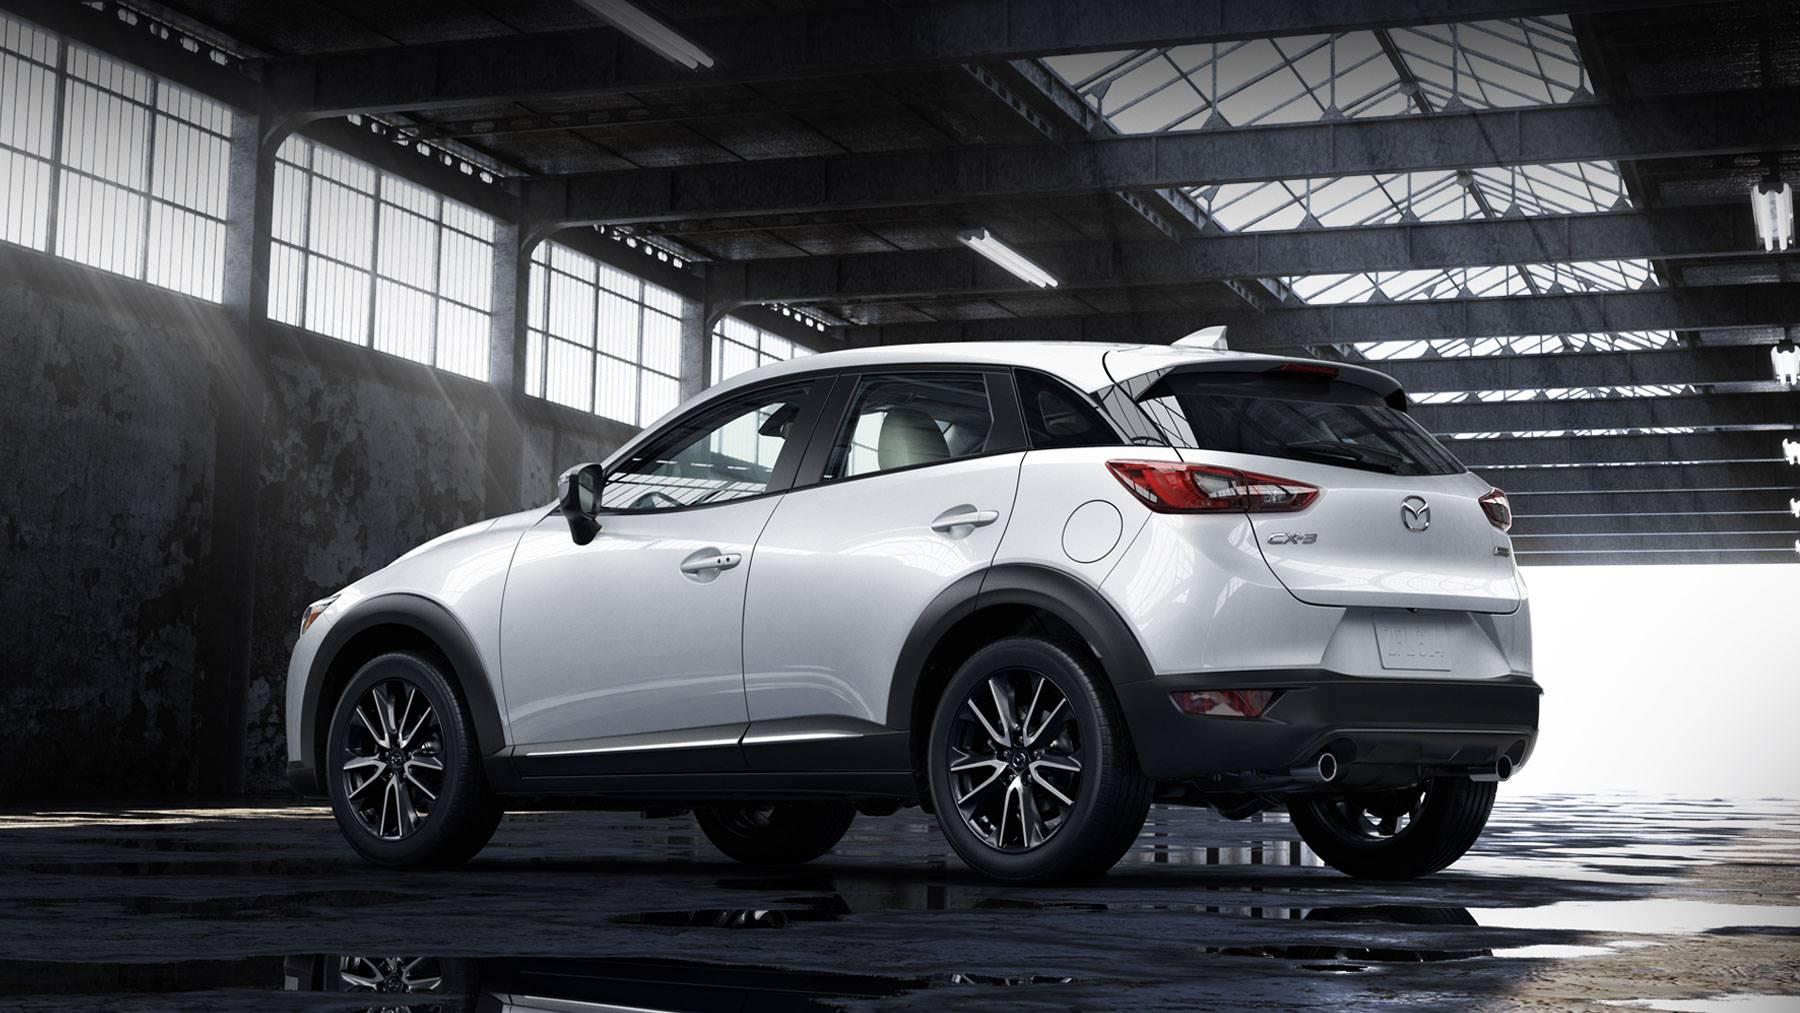 Mazda Cx 3 >> Coming Soon 2019 Mazda Cx 3 Peruzzi Mazda Blog